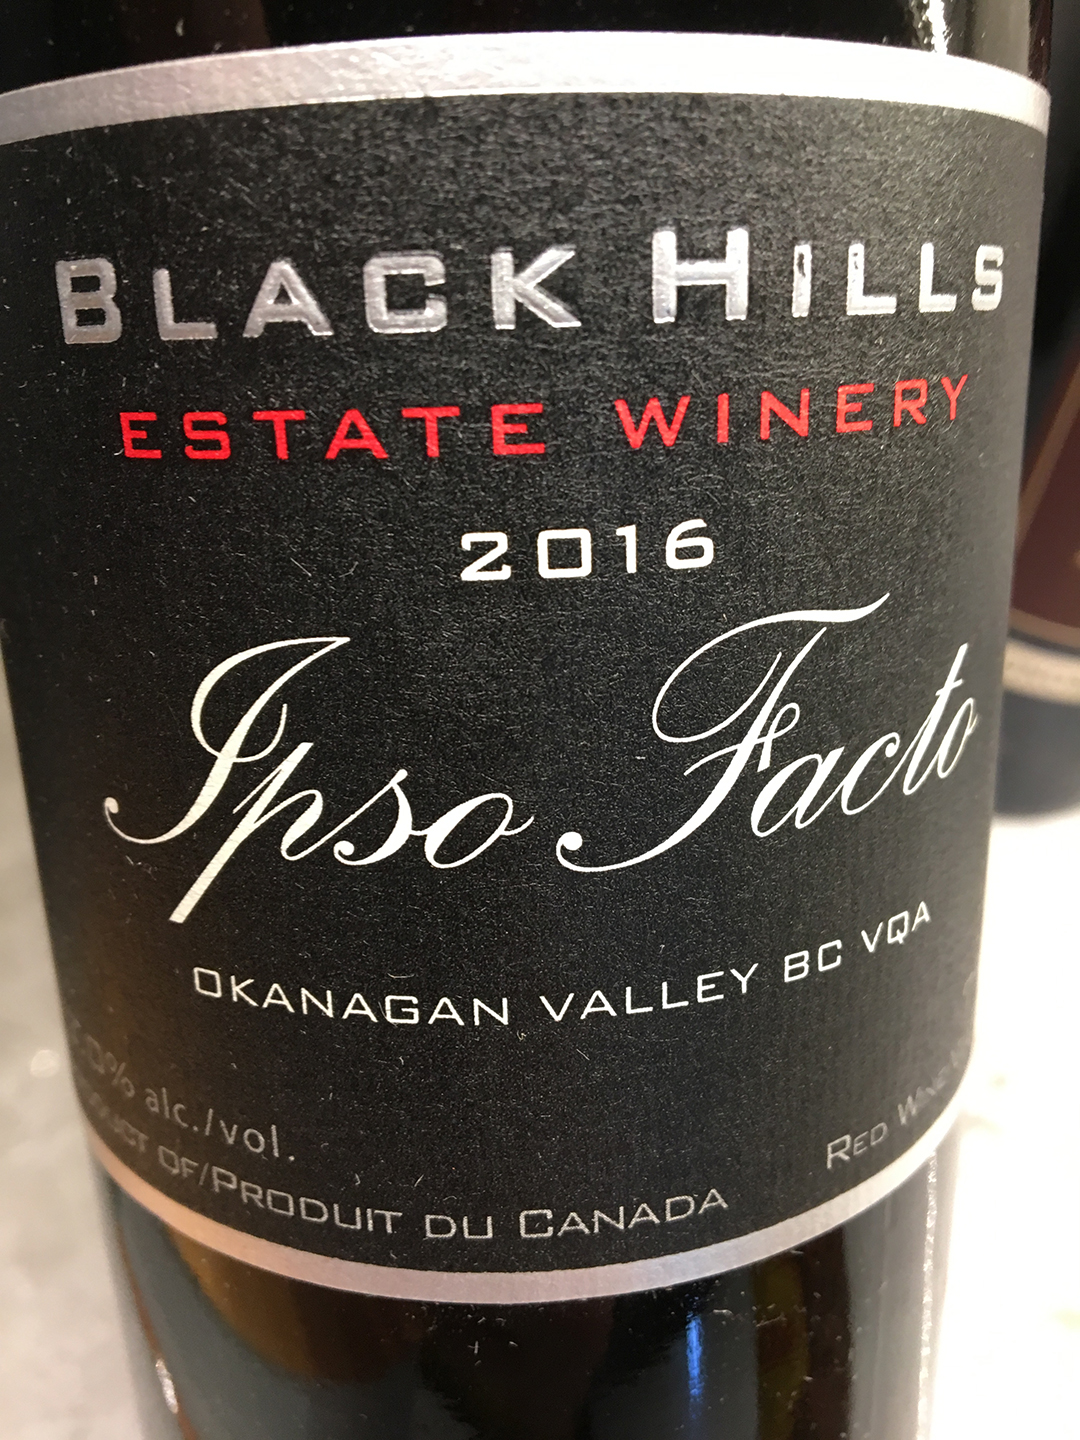 Black Hills Estate Winery Ipso Facto 2016